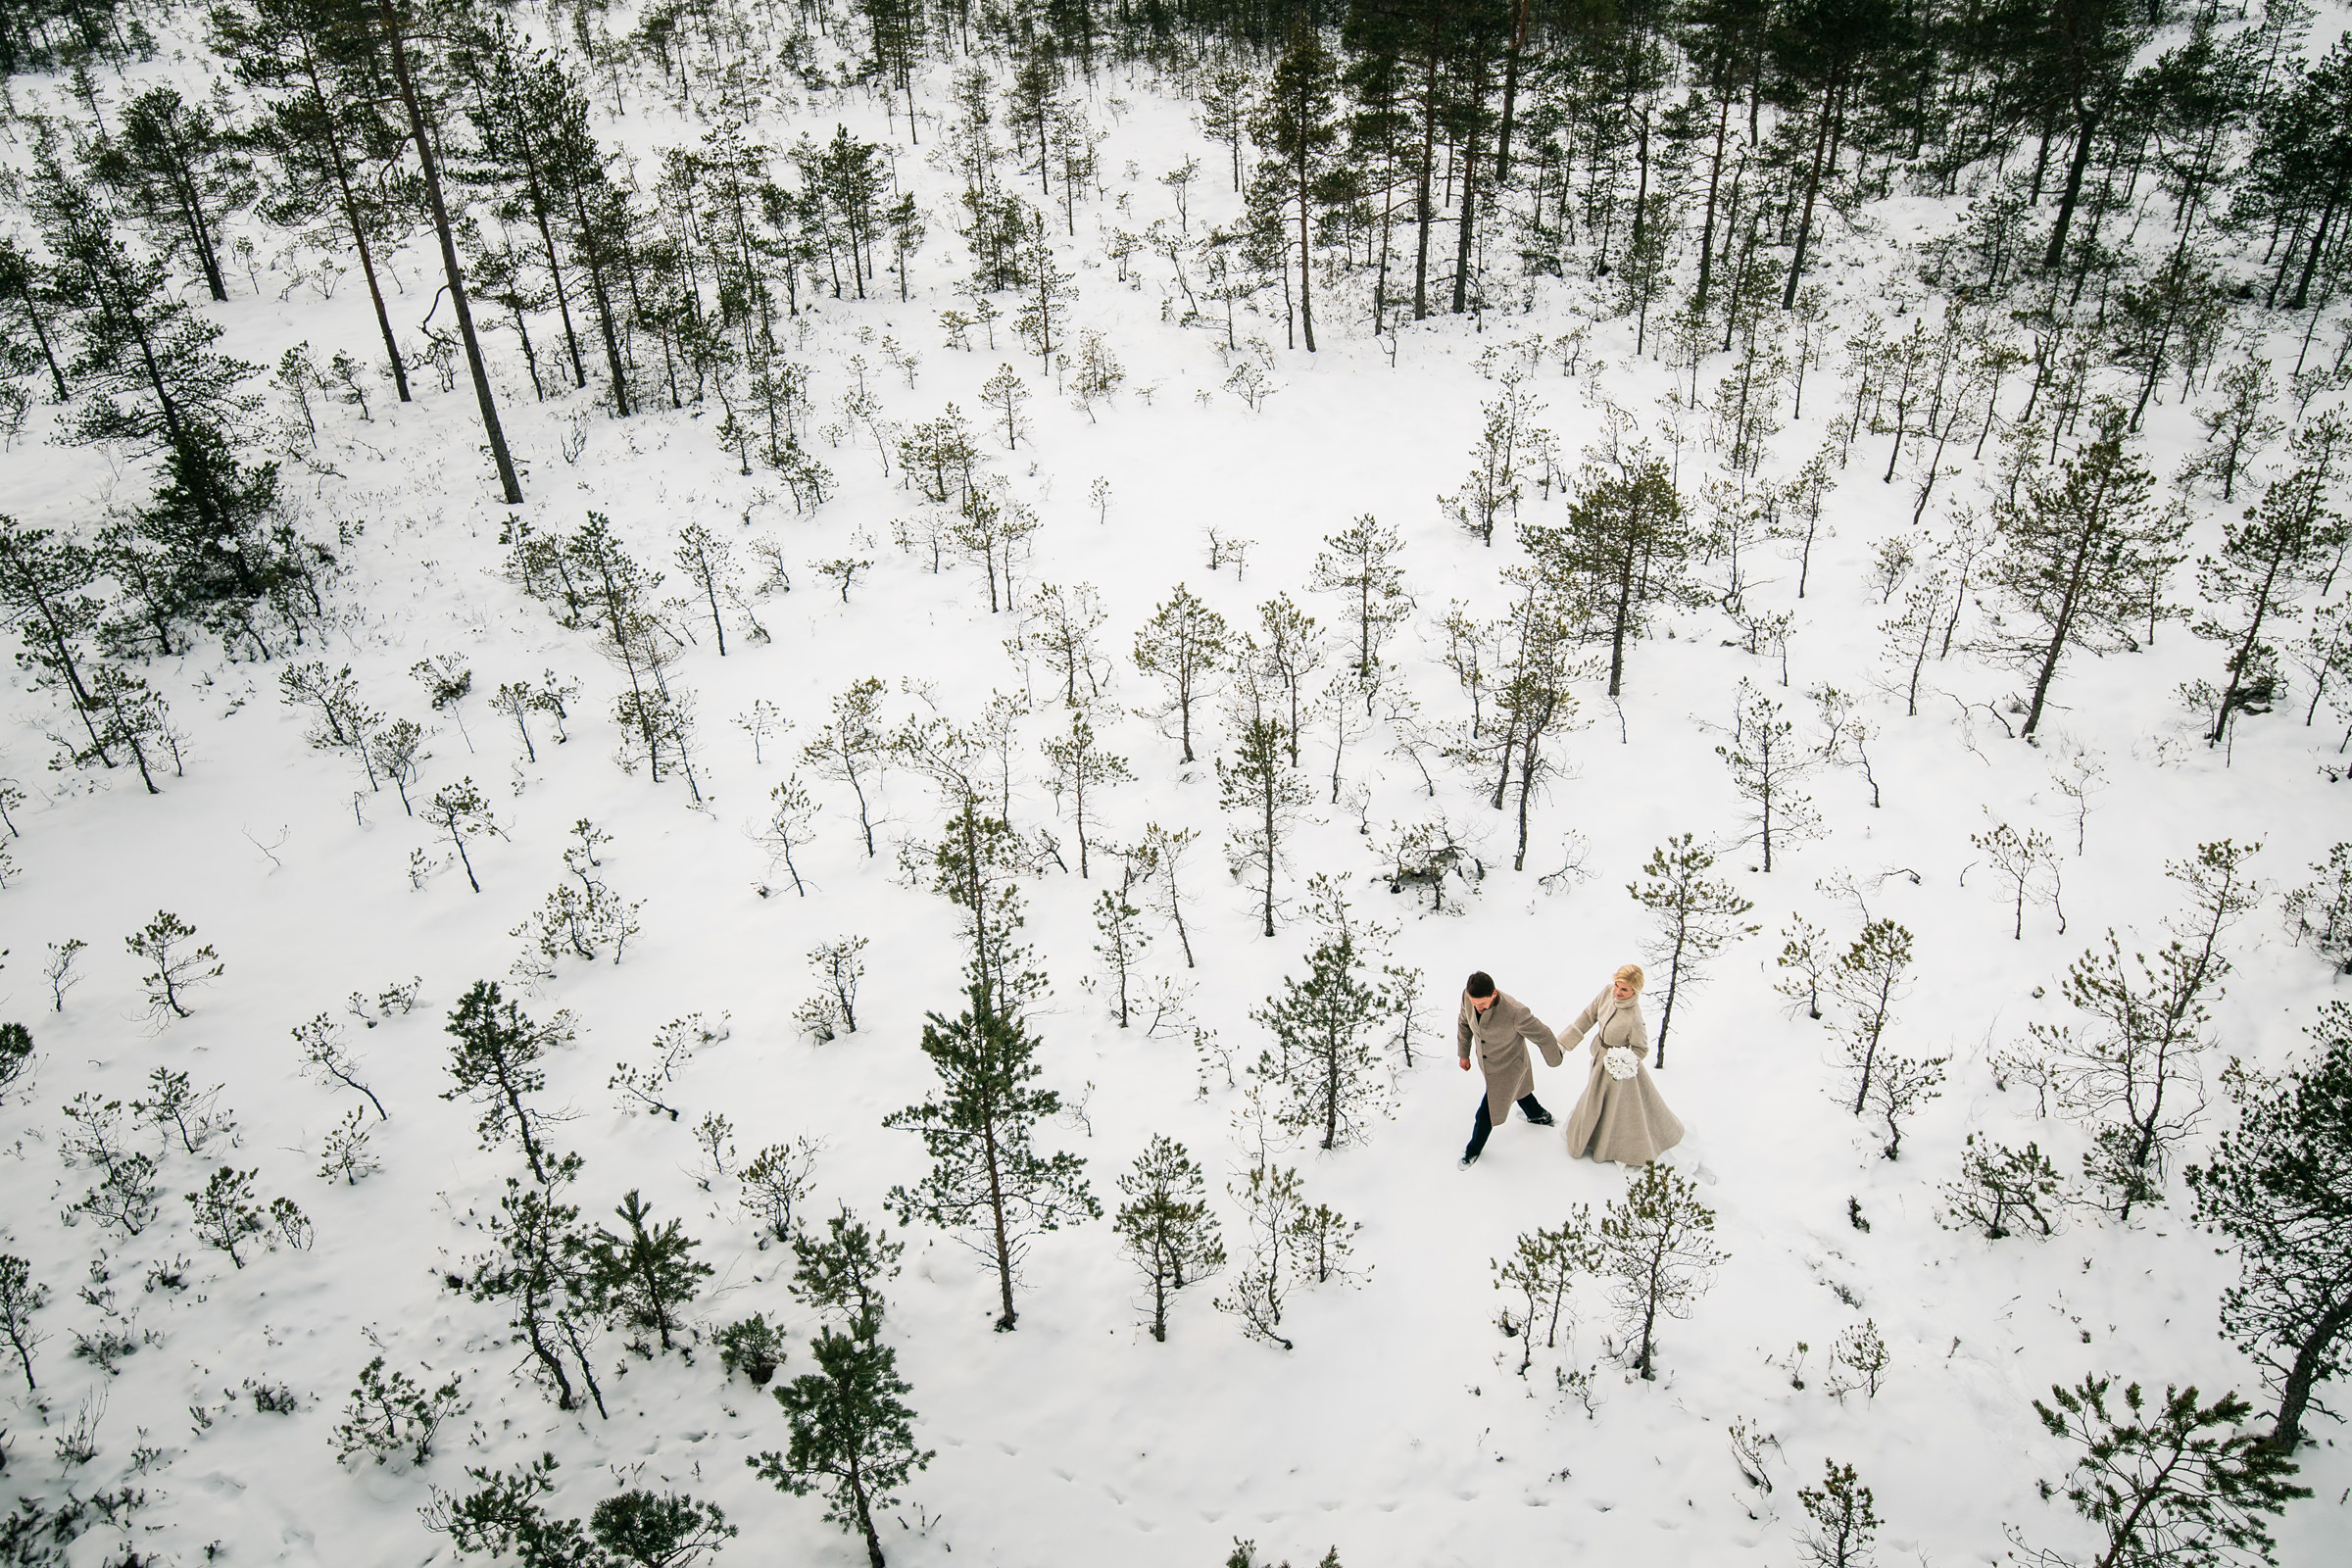 Aerial shot of couple in snow among trees in Estonia - photo by M&J Studios